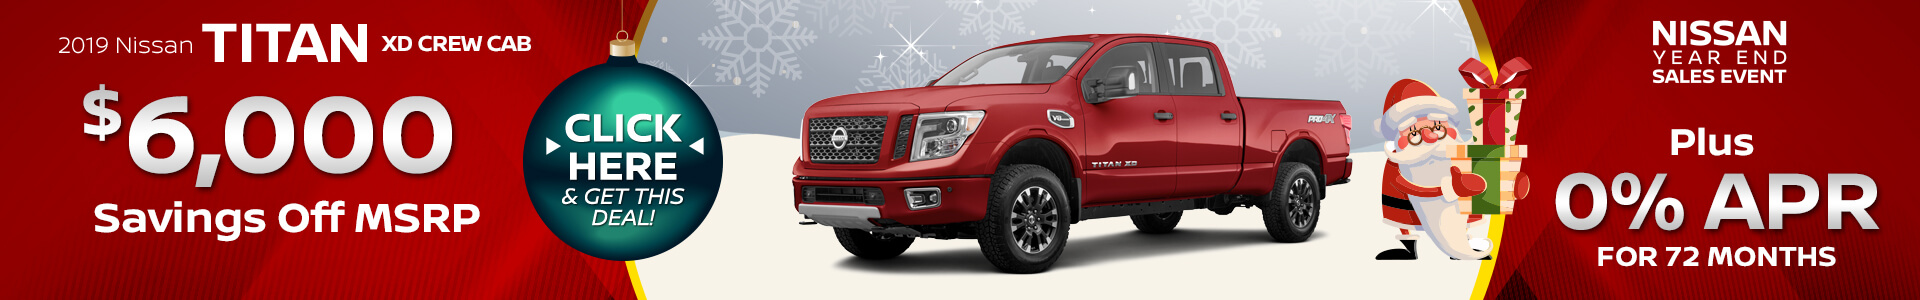 Nissan Titan $6,000 off MSRP